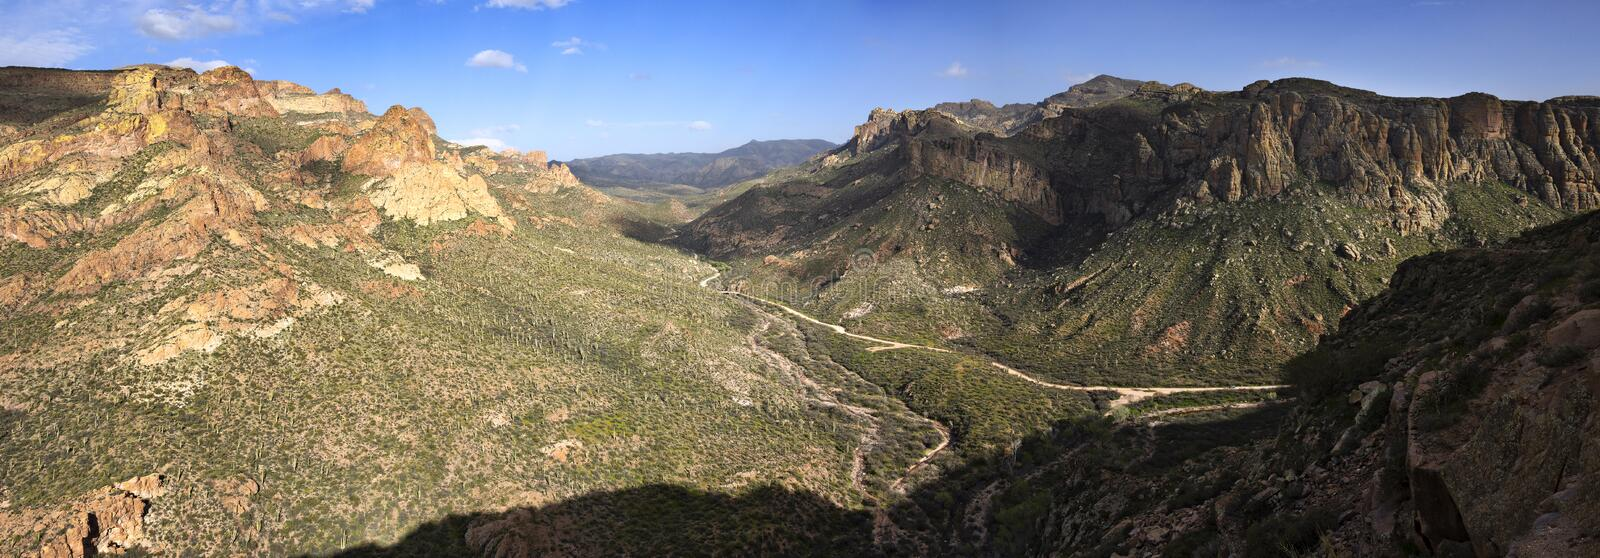 Apache Trail. Panorama of Buttes and Saguaros along Apache Trail in Arizona royalty free stock photo